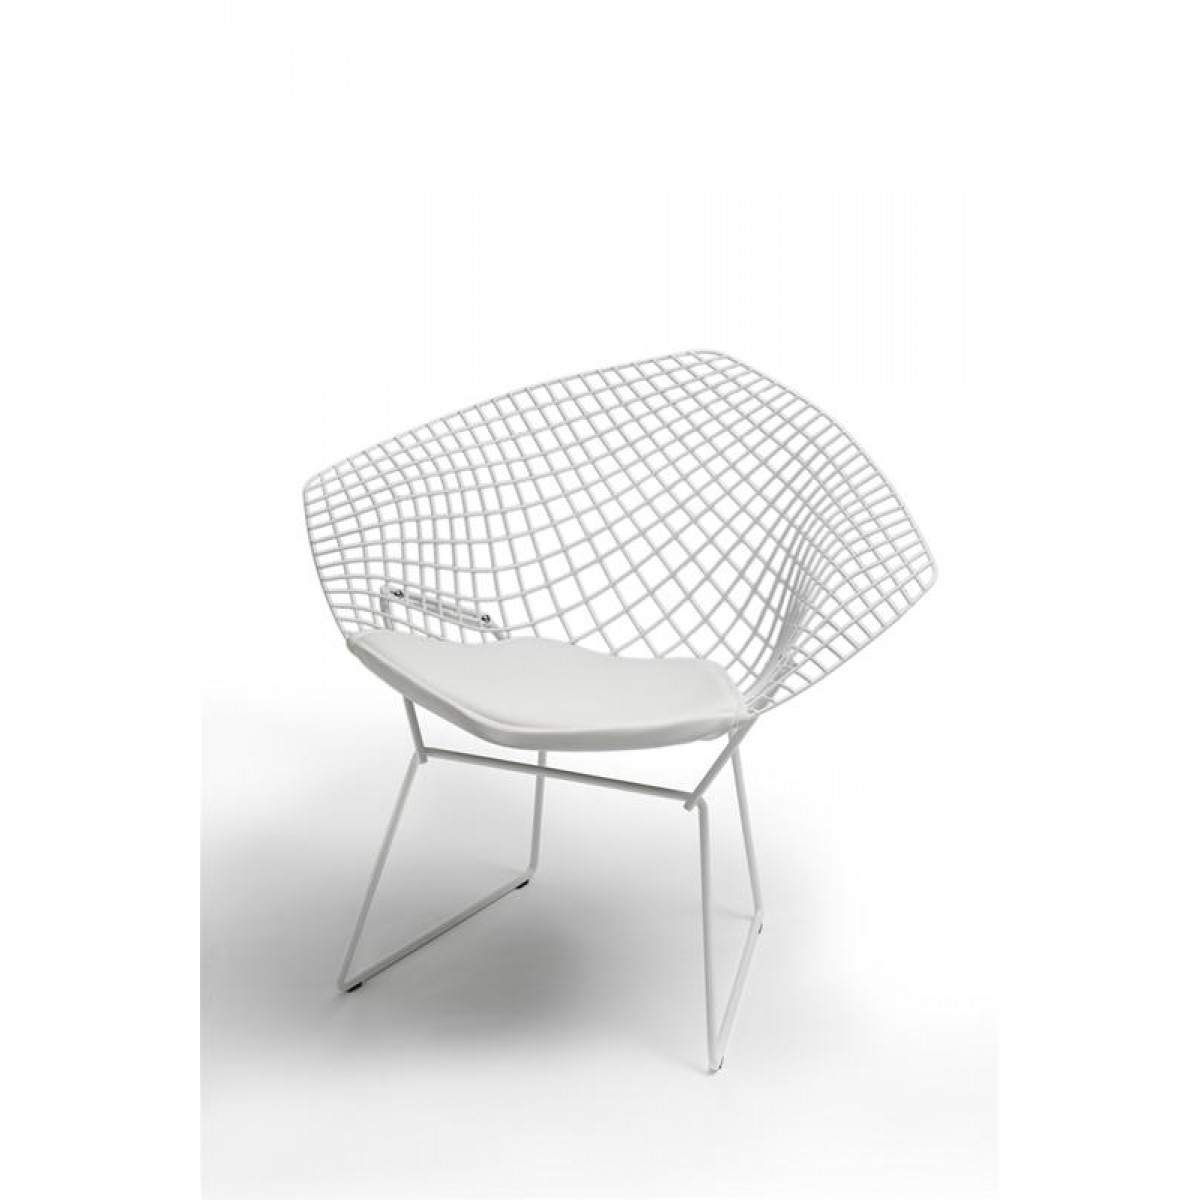 Lounge-sessel Outdoor Fähig Nylon Styropor Knoll International Bertoia Diamond Sessel Outdoor Von